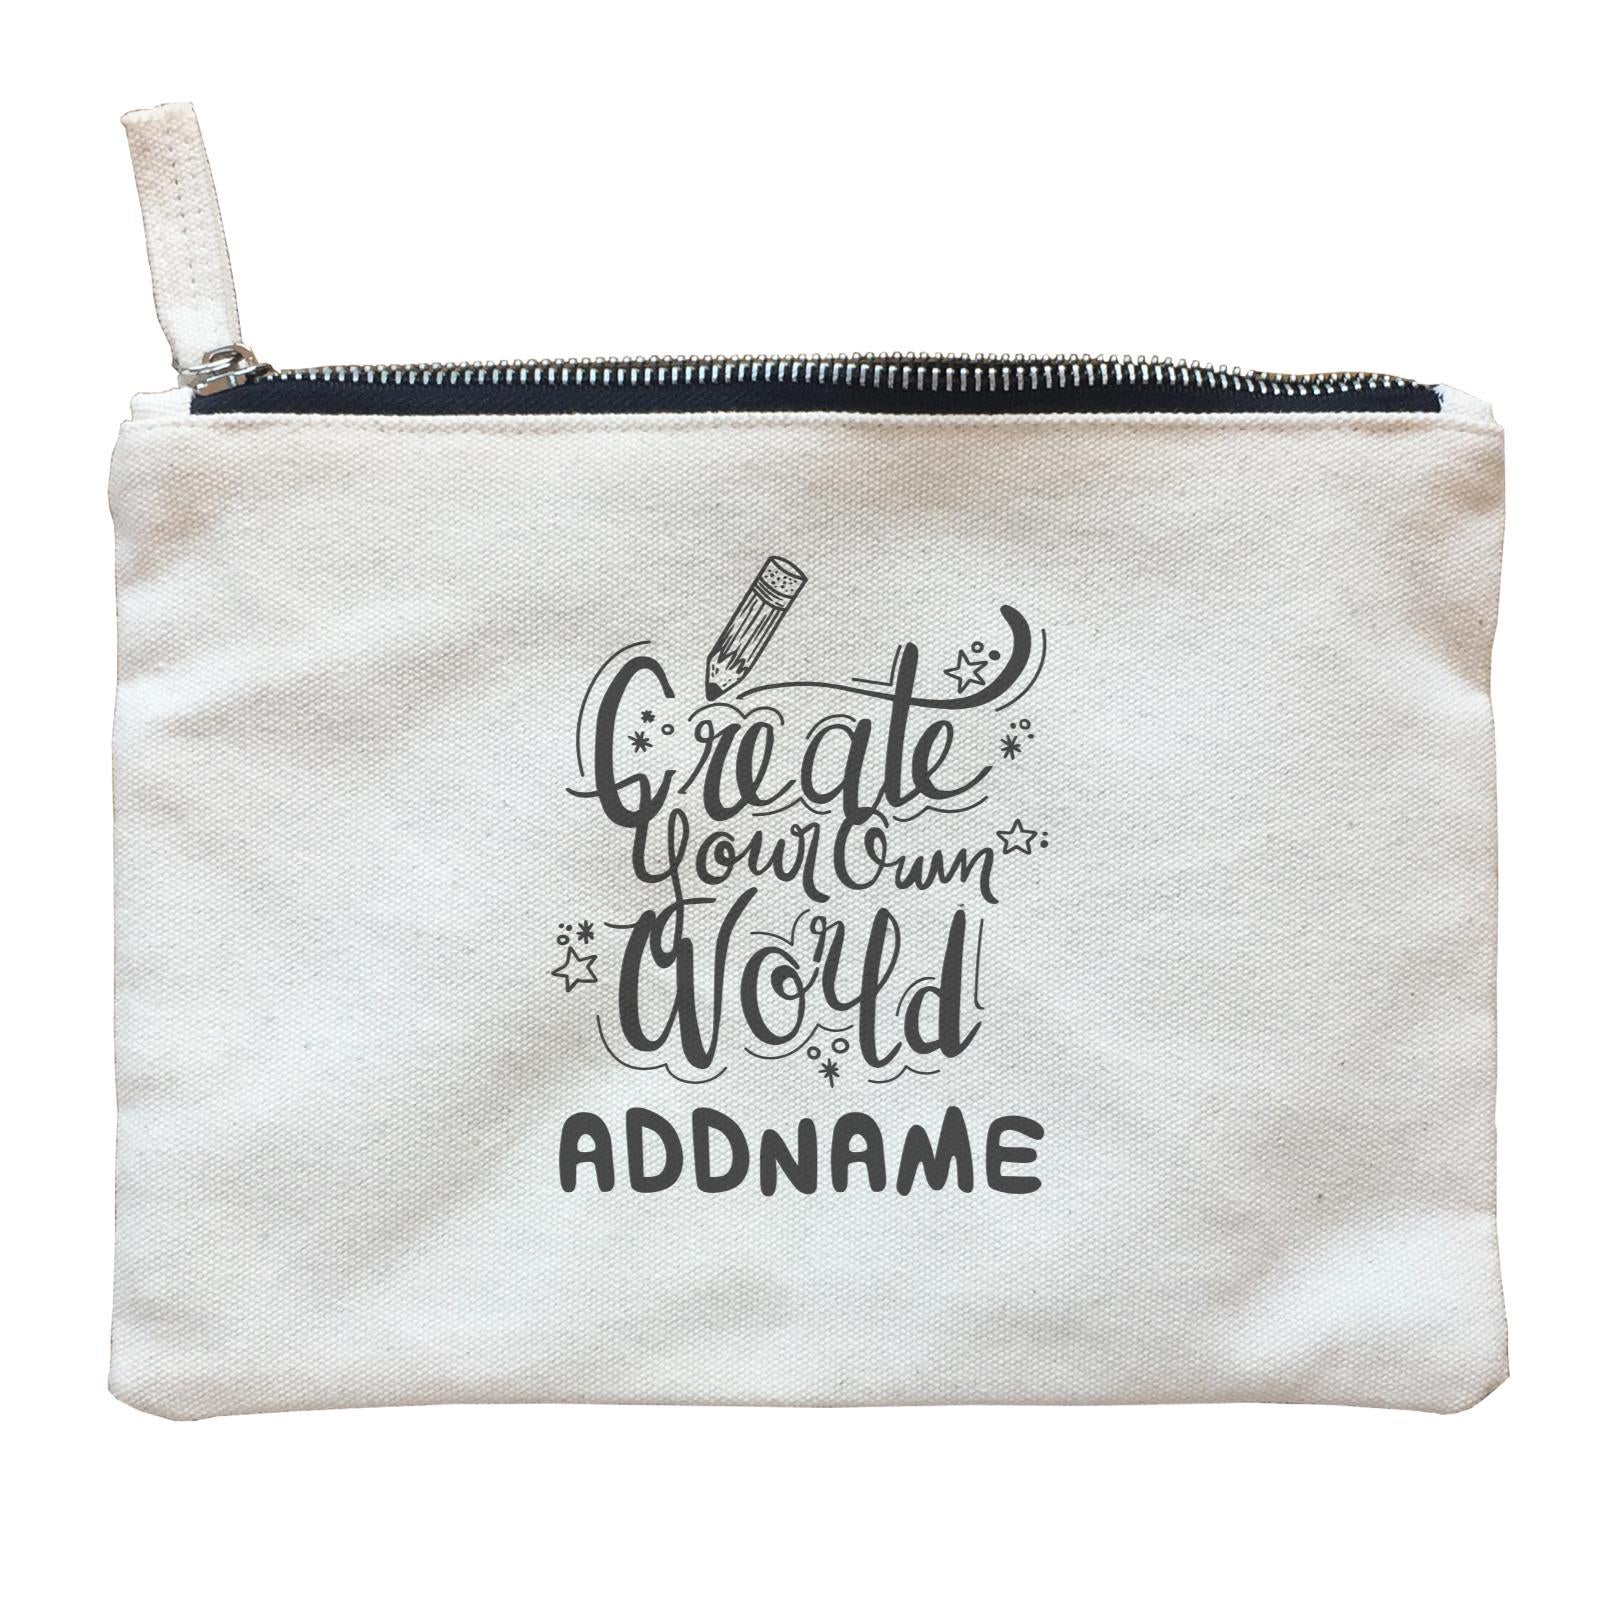 Children's Day Gift Series Create Your Own World Addname  Zipper Pouch